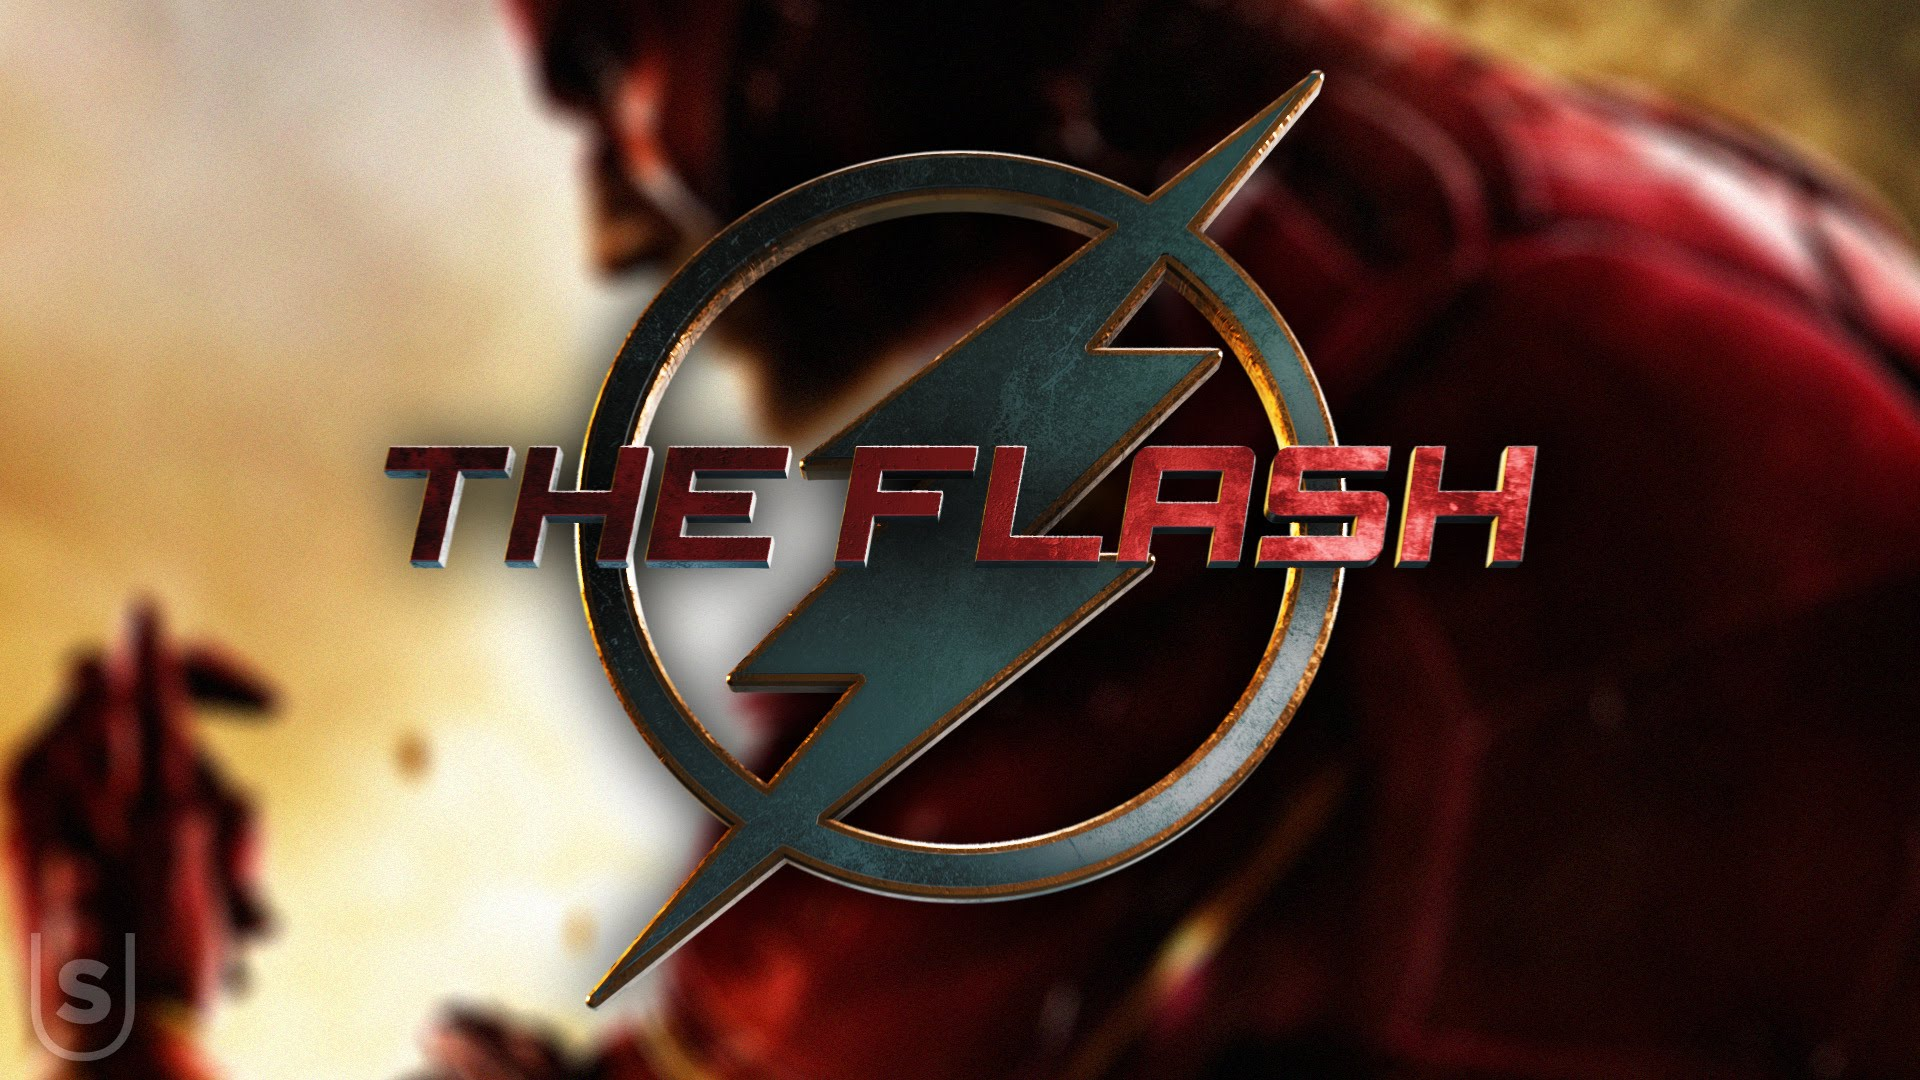 the flash 2018, hd movies, 4k wallpapers, images, backgrounds